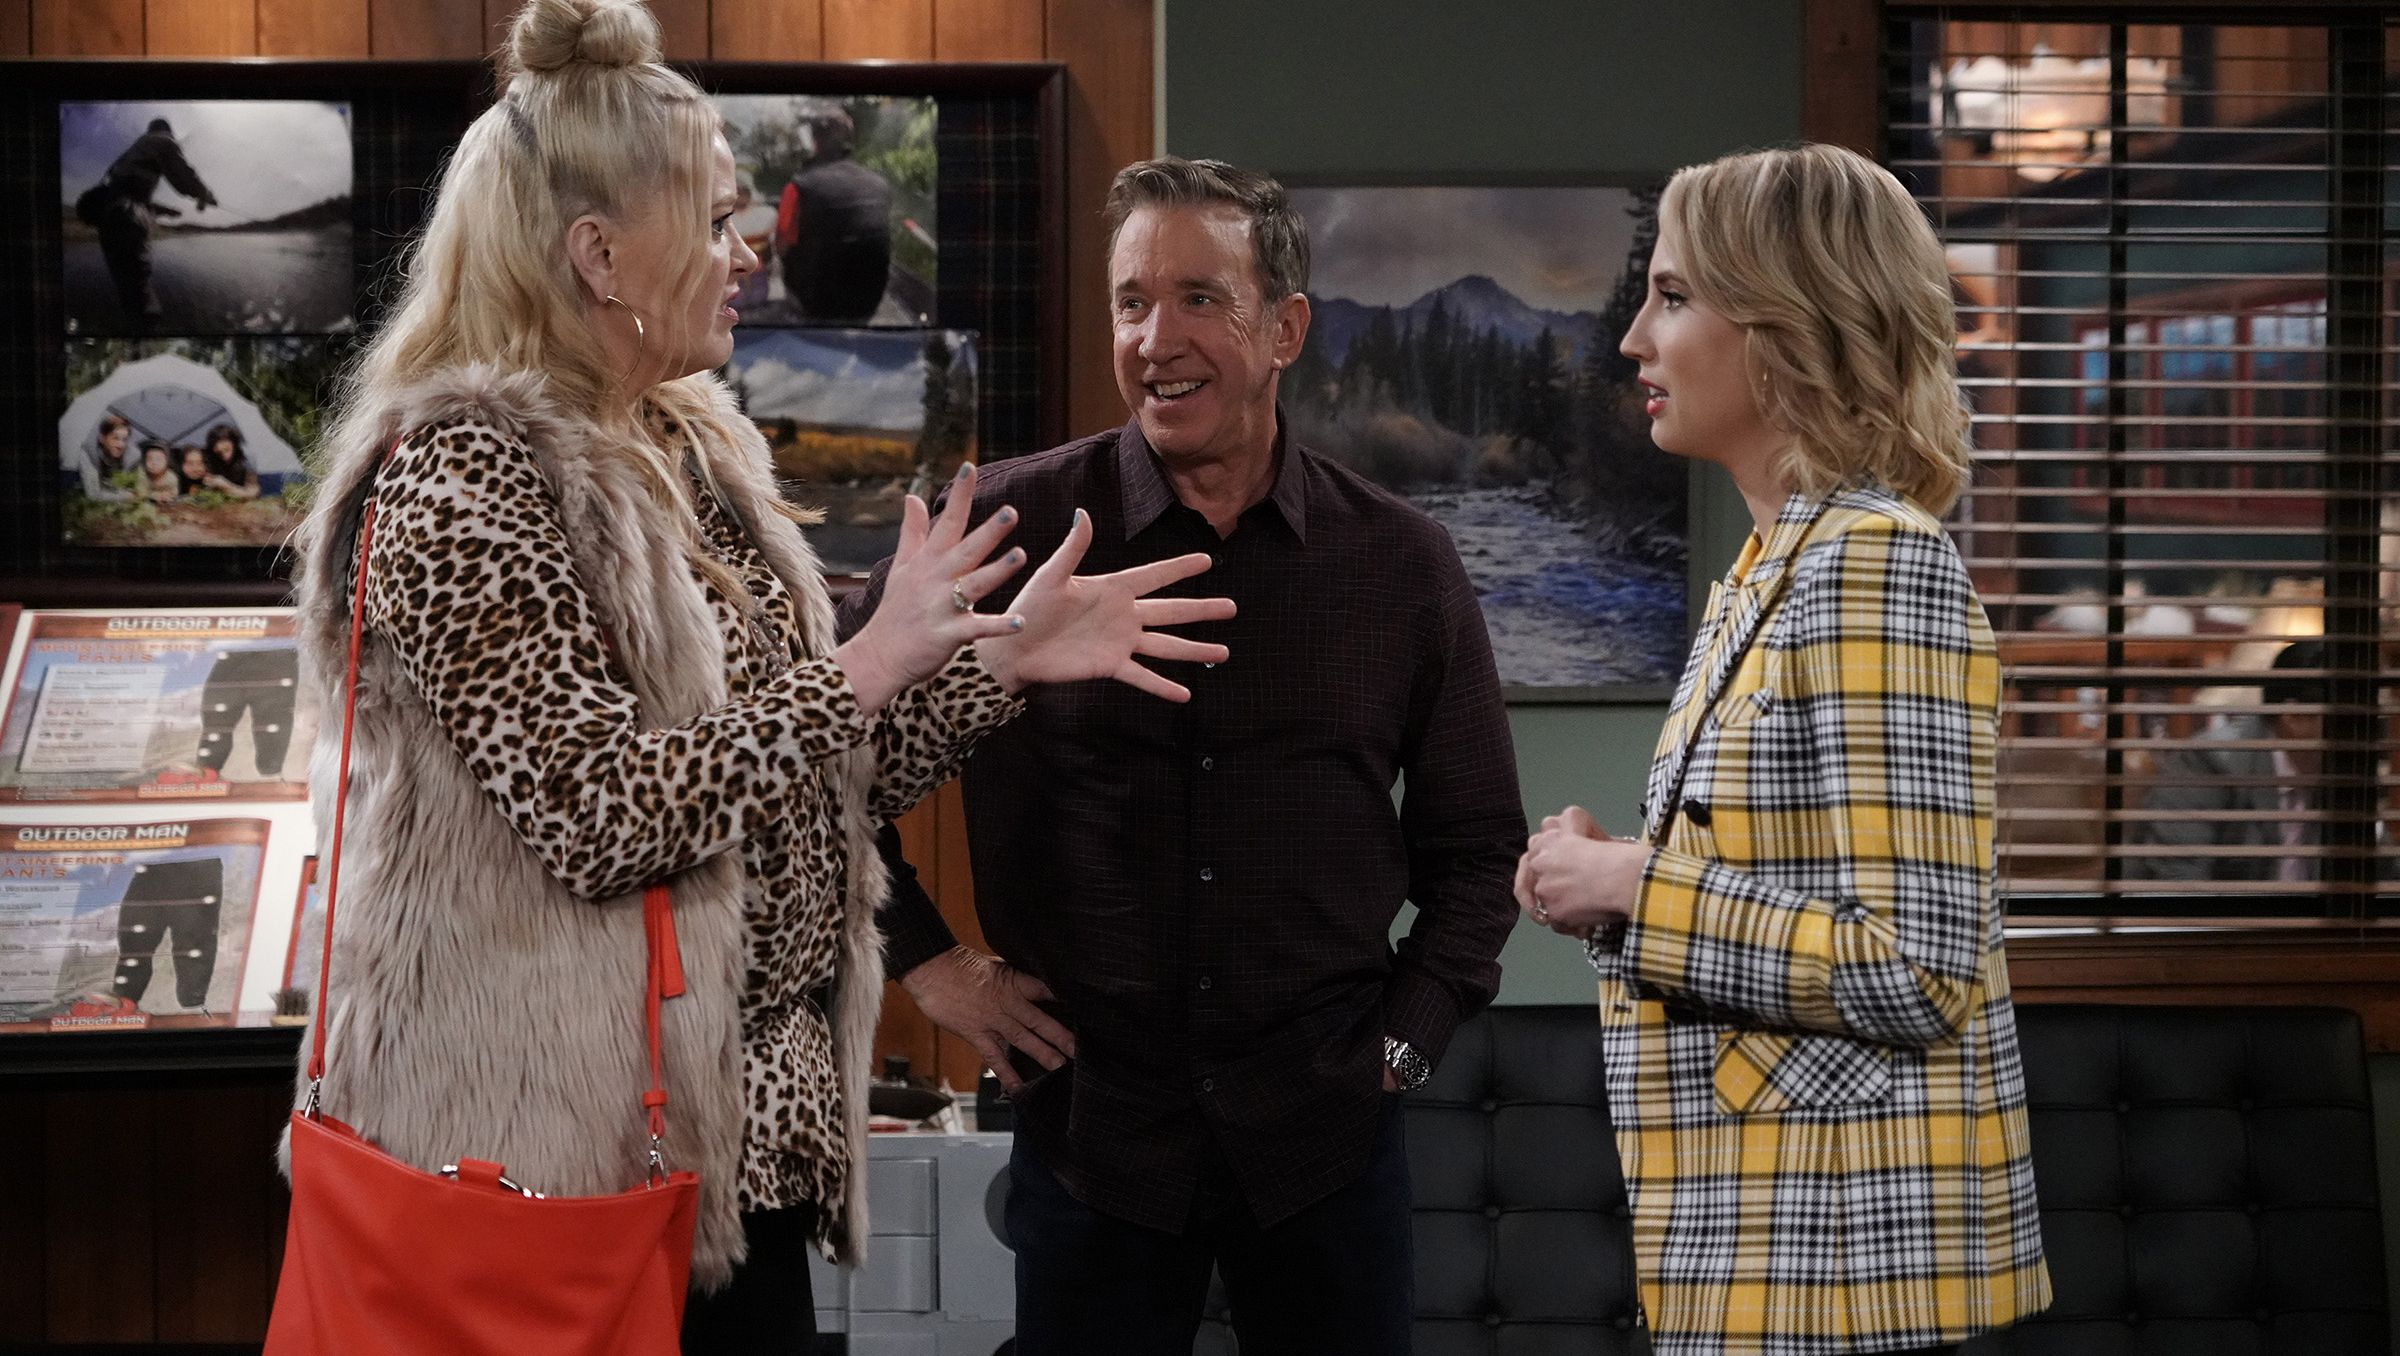 'Last Man Standing' Surprises Fans With an Appearance by 'Reba' Star Melissa Peterman